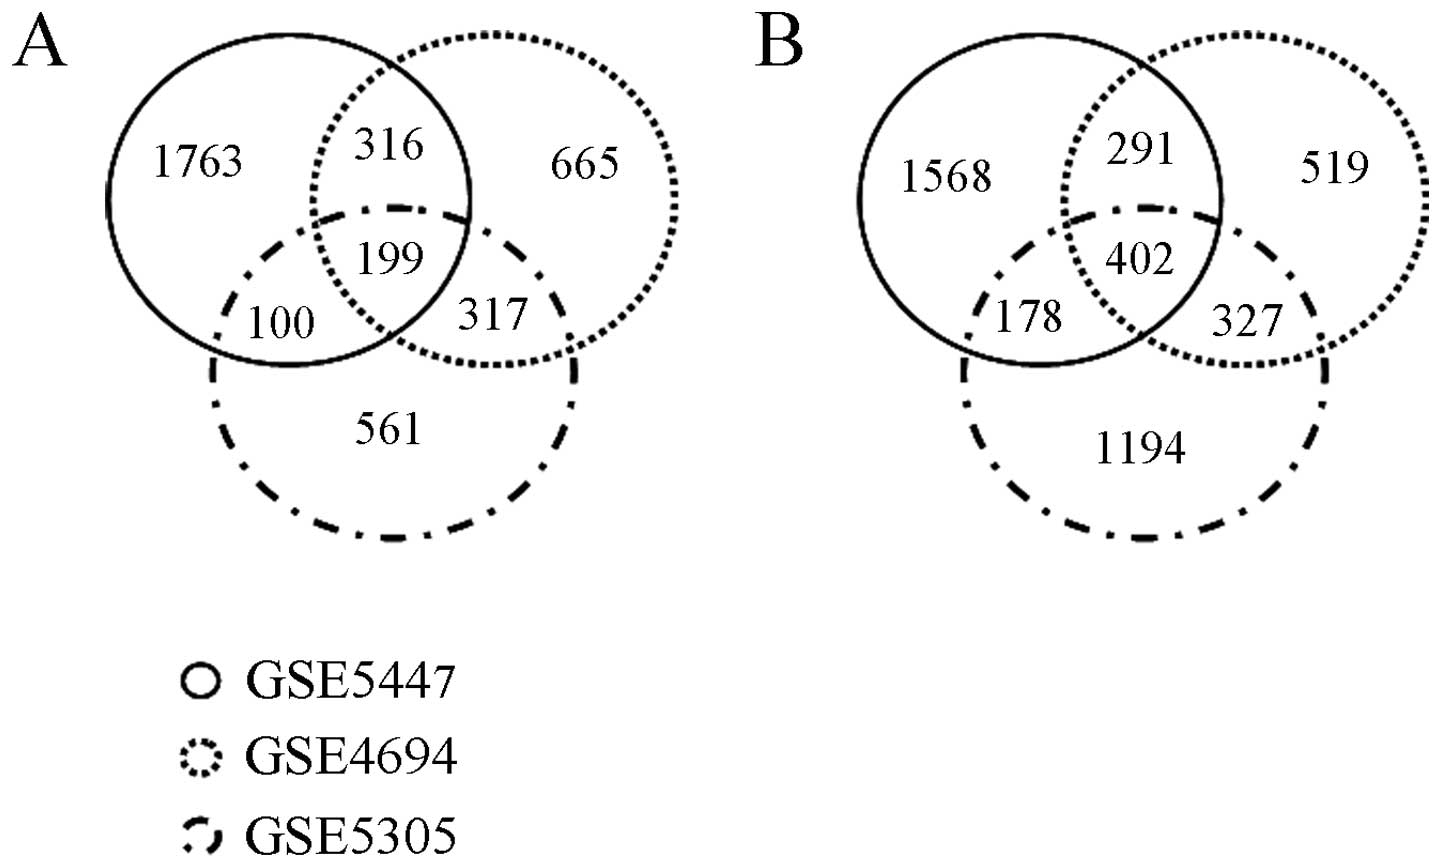 Lrrc75b Is A Novel Negative Regulator Of C2c12 Myogenic Differentiation 2001 Mercedes Benz E 430 Fuse Box Designation Figure 1 Venn Diagrams The Differentially Expressed Genes Identified From Datasets Used Intersection Upregulated Among